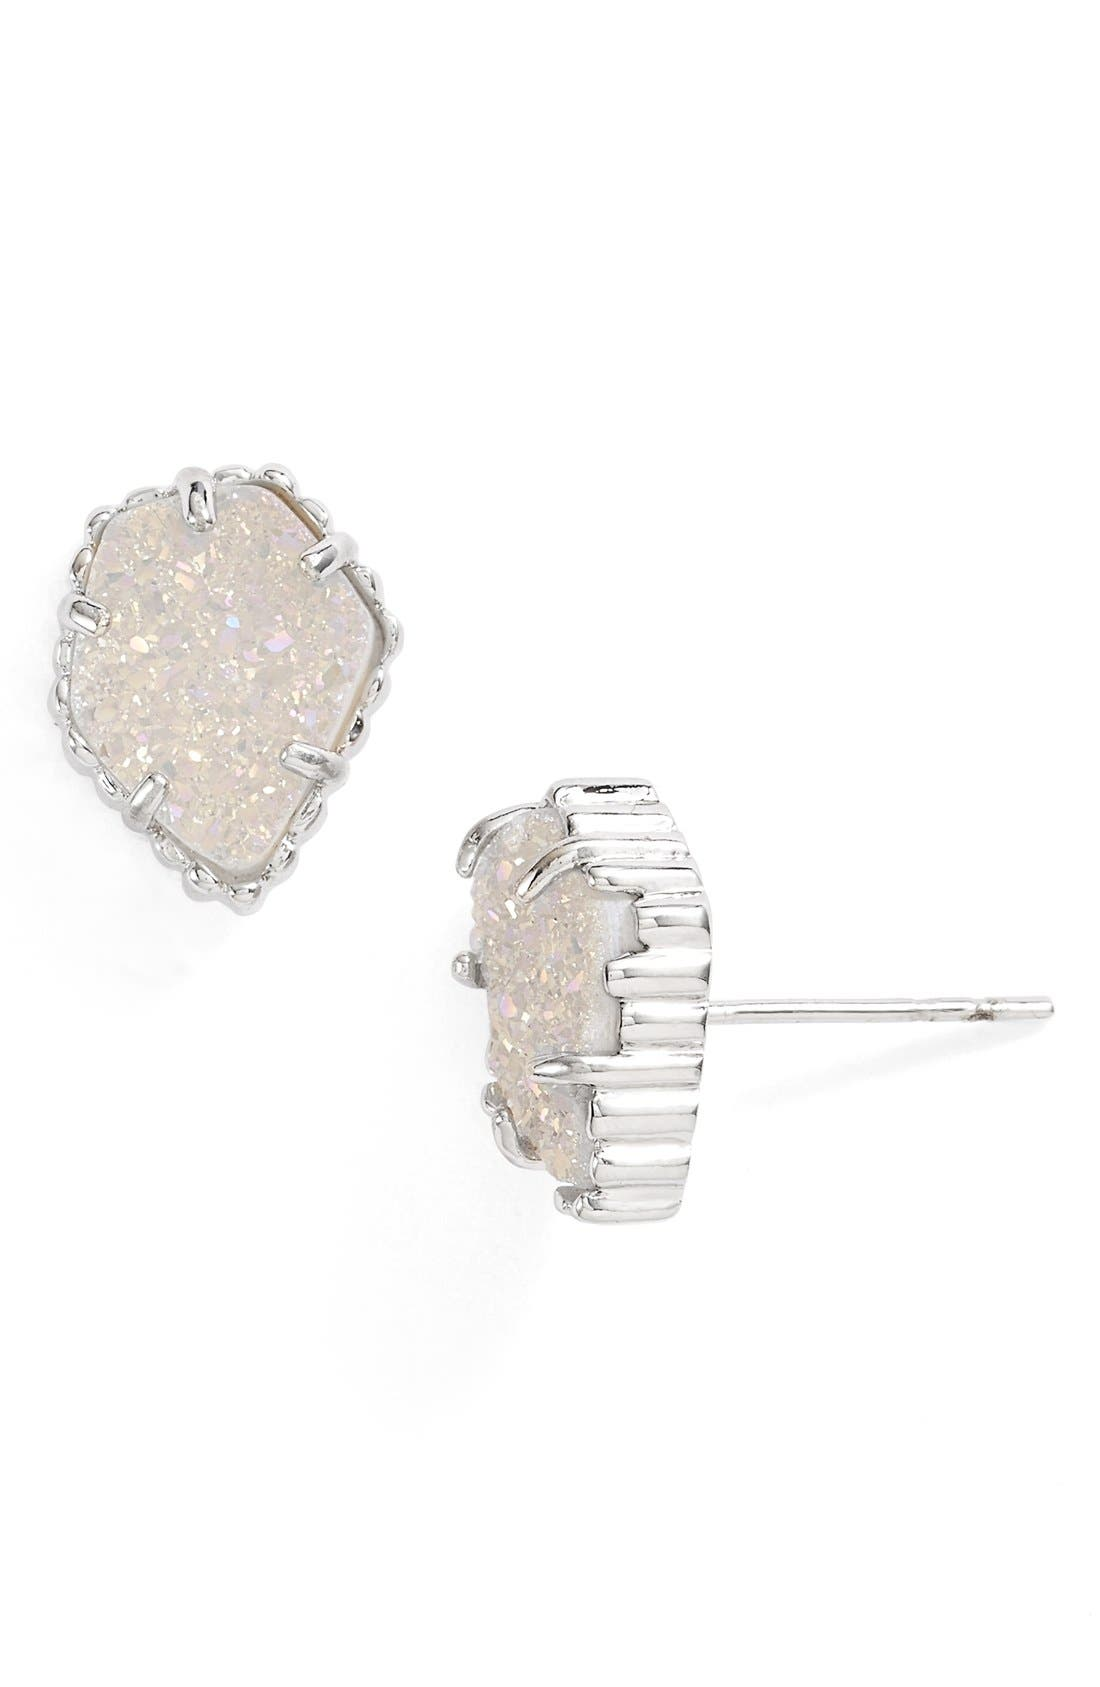 Kendra Scott Tessa Stone Stud Earrings